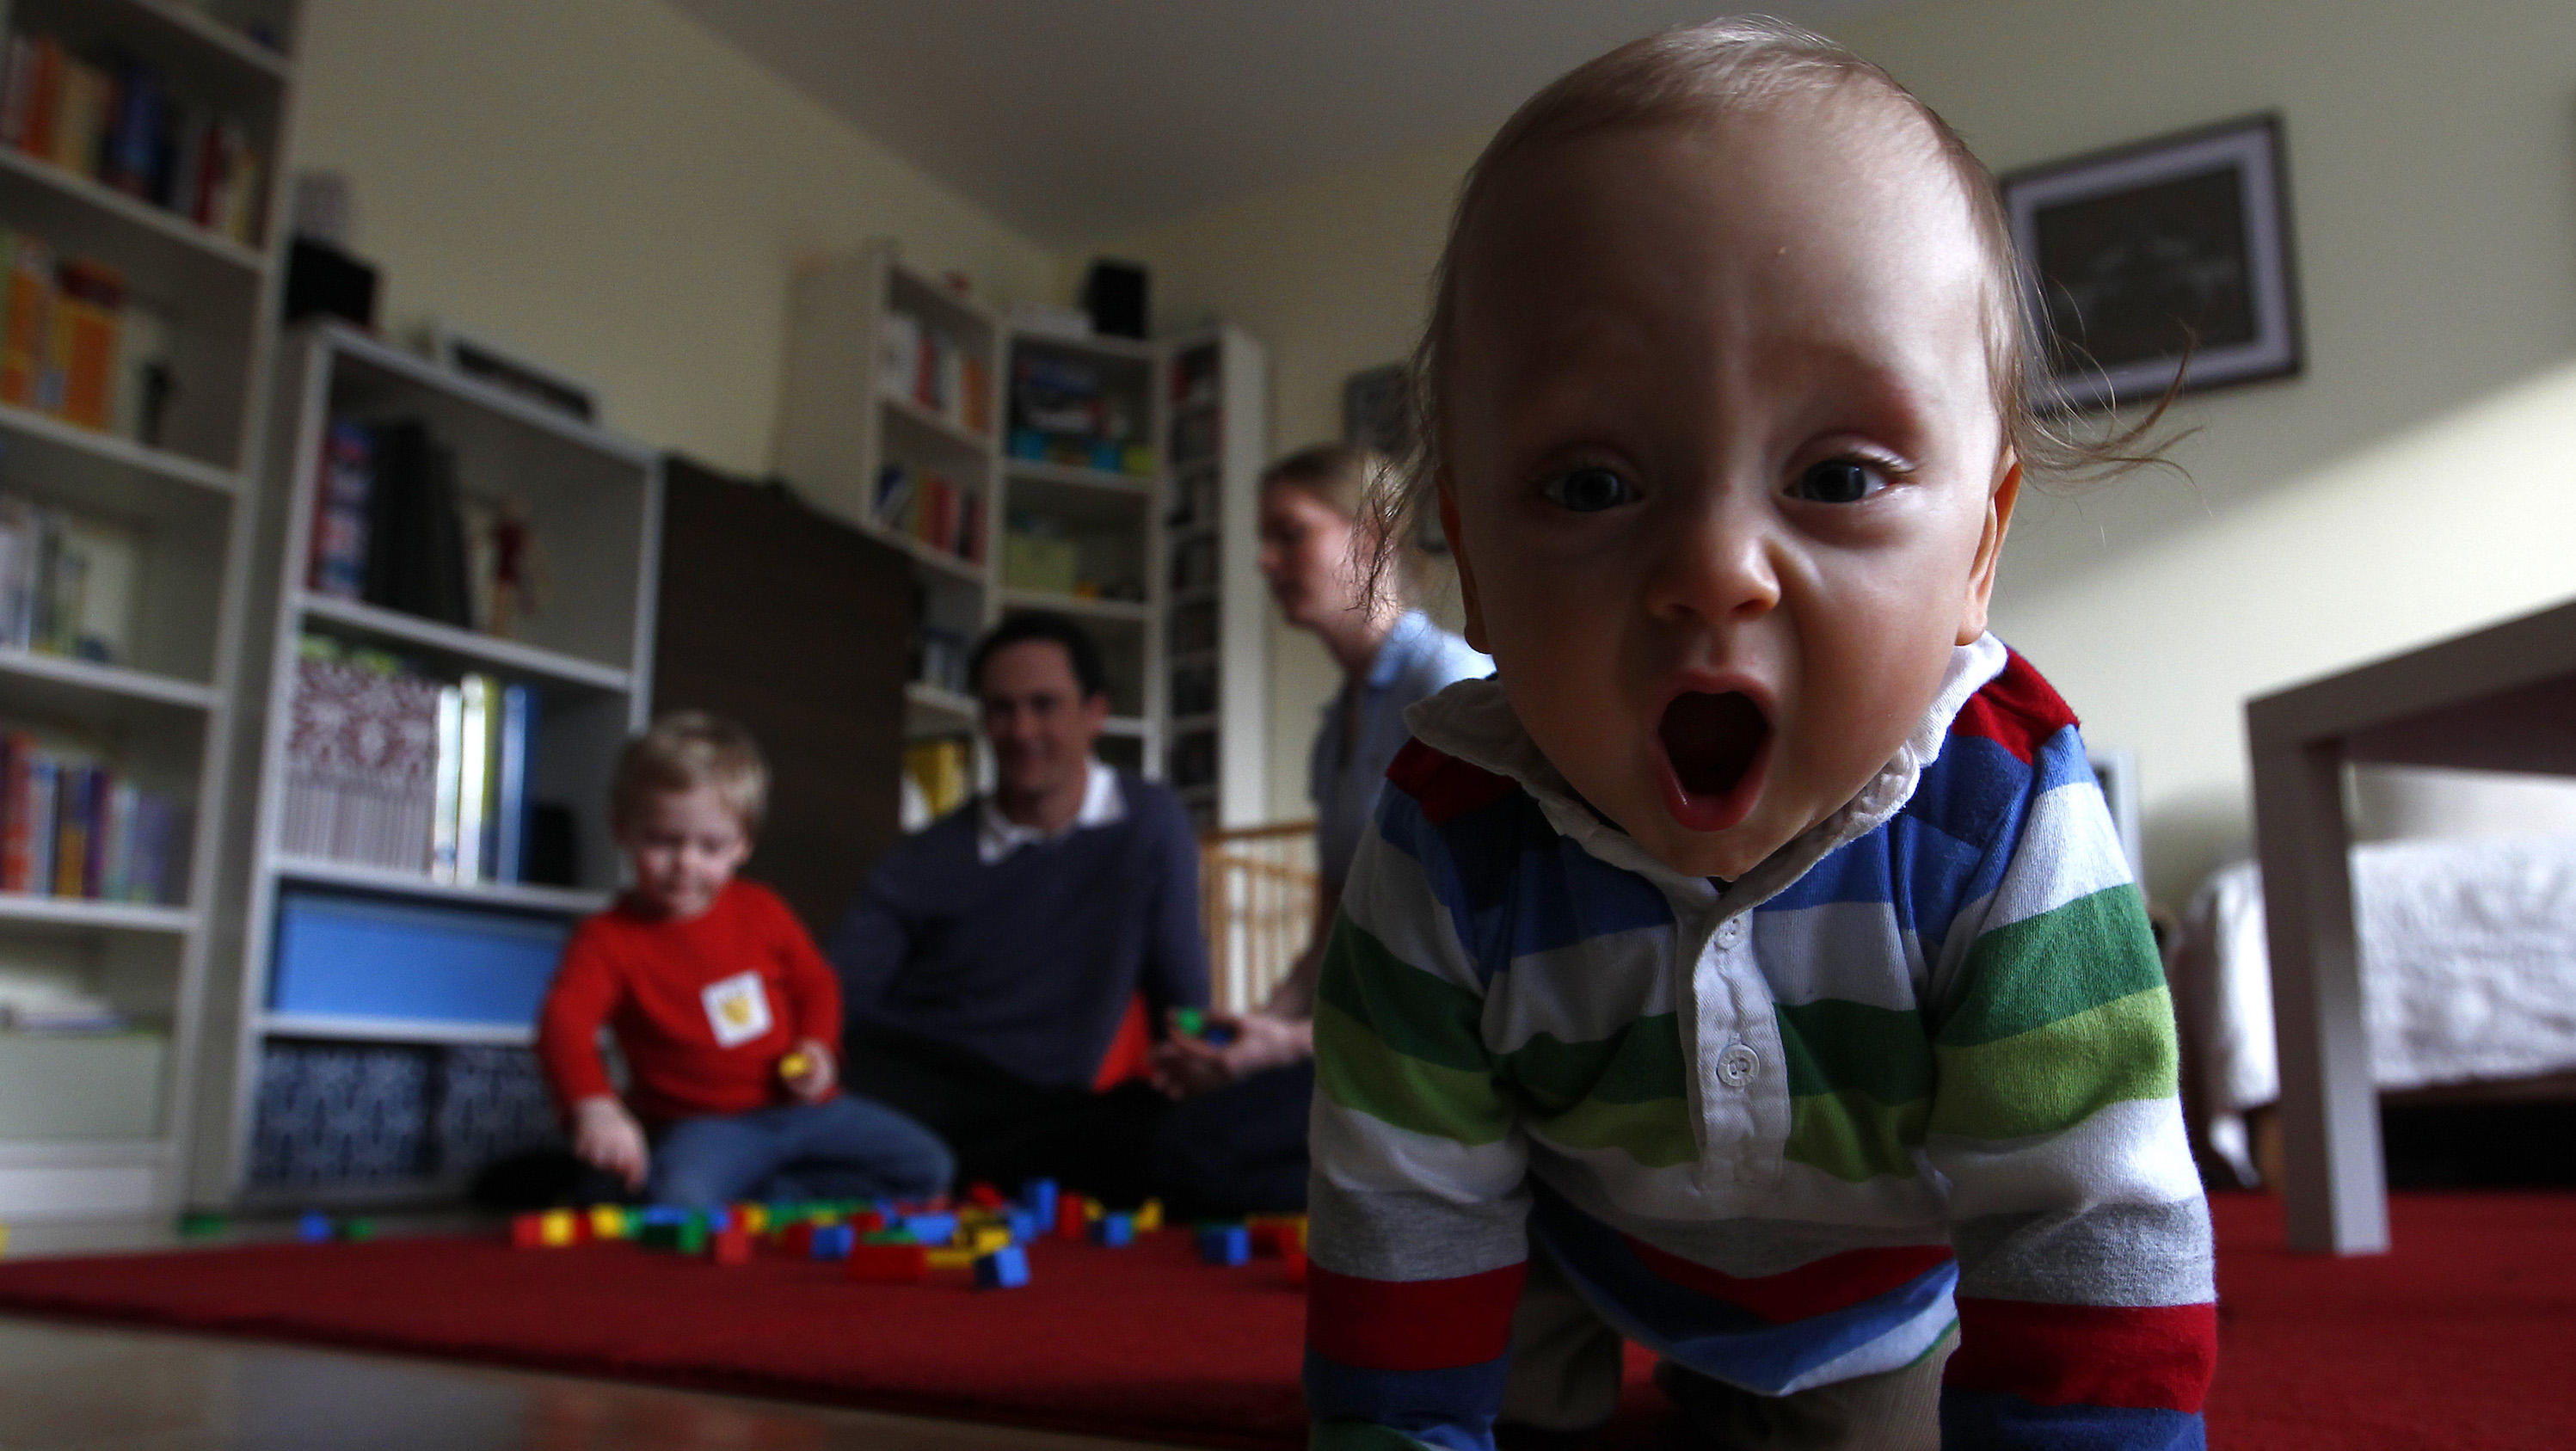 a baby crawls toward the camera with parents in the background